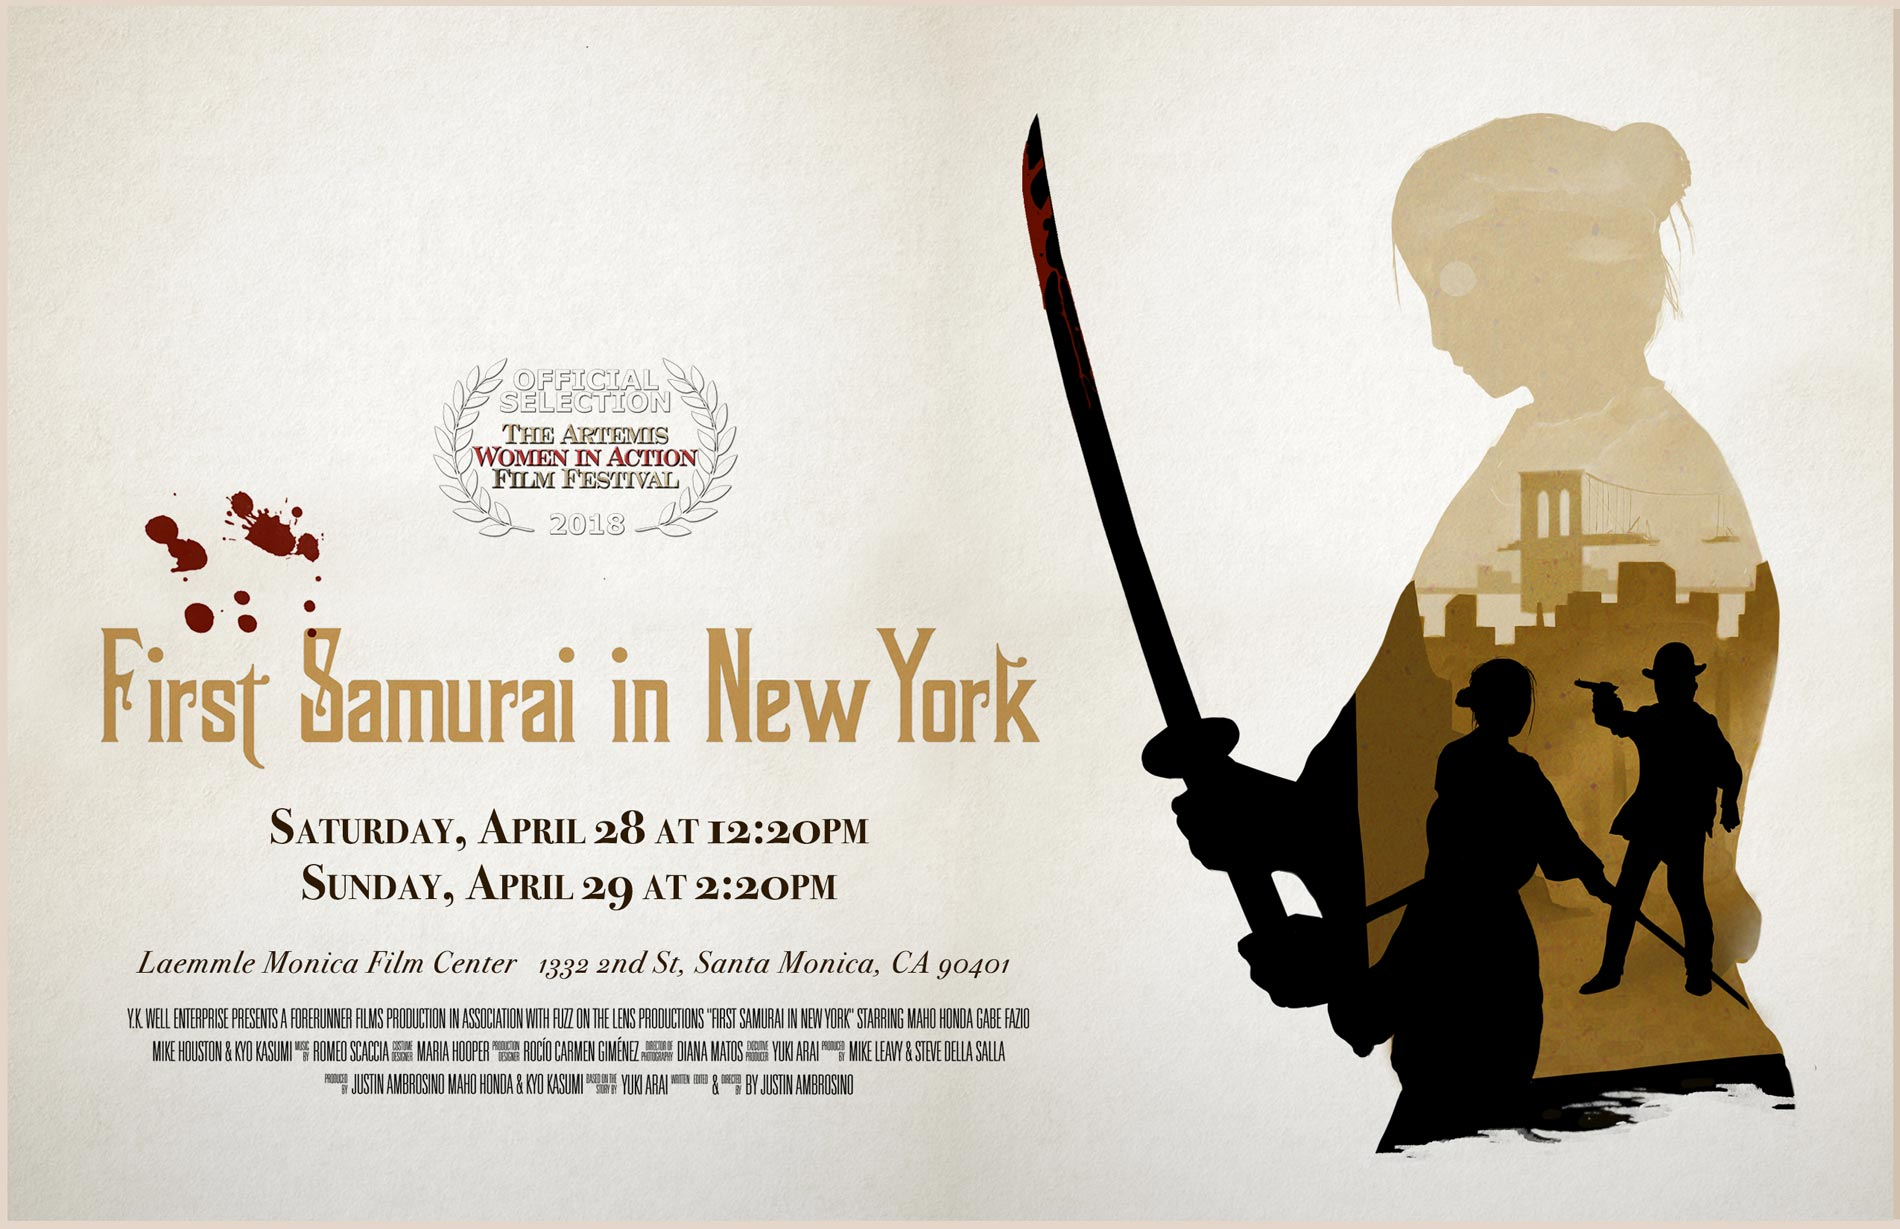 First Samurai in New York